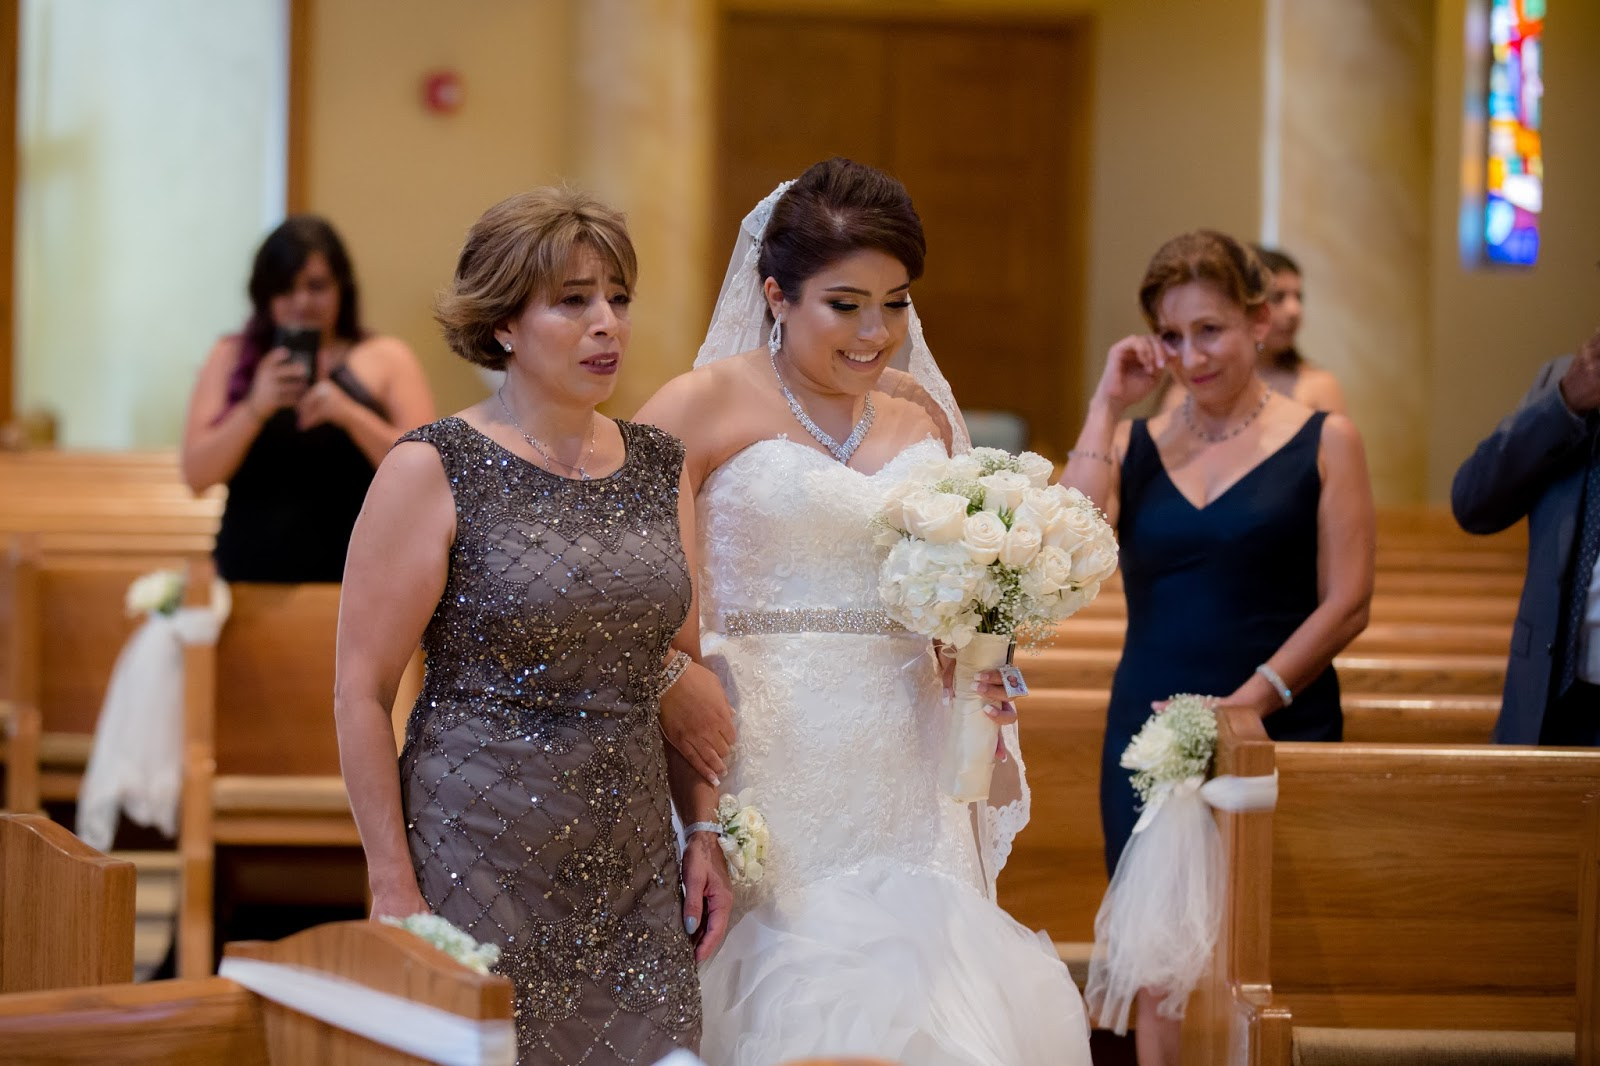 Mother of Bride Walks Bride Down the Aisle